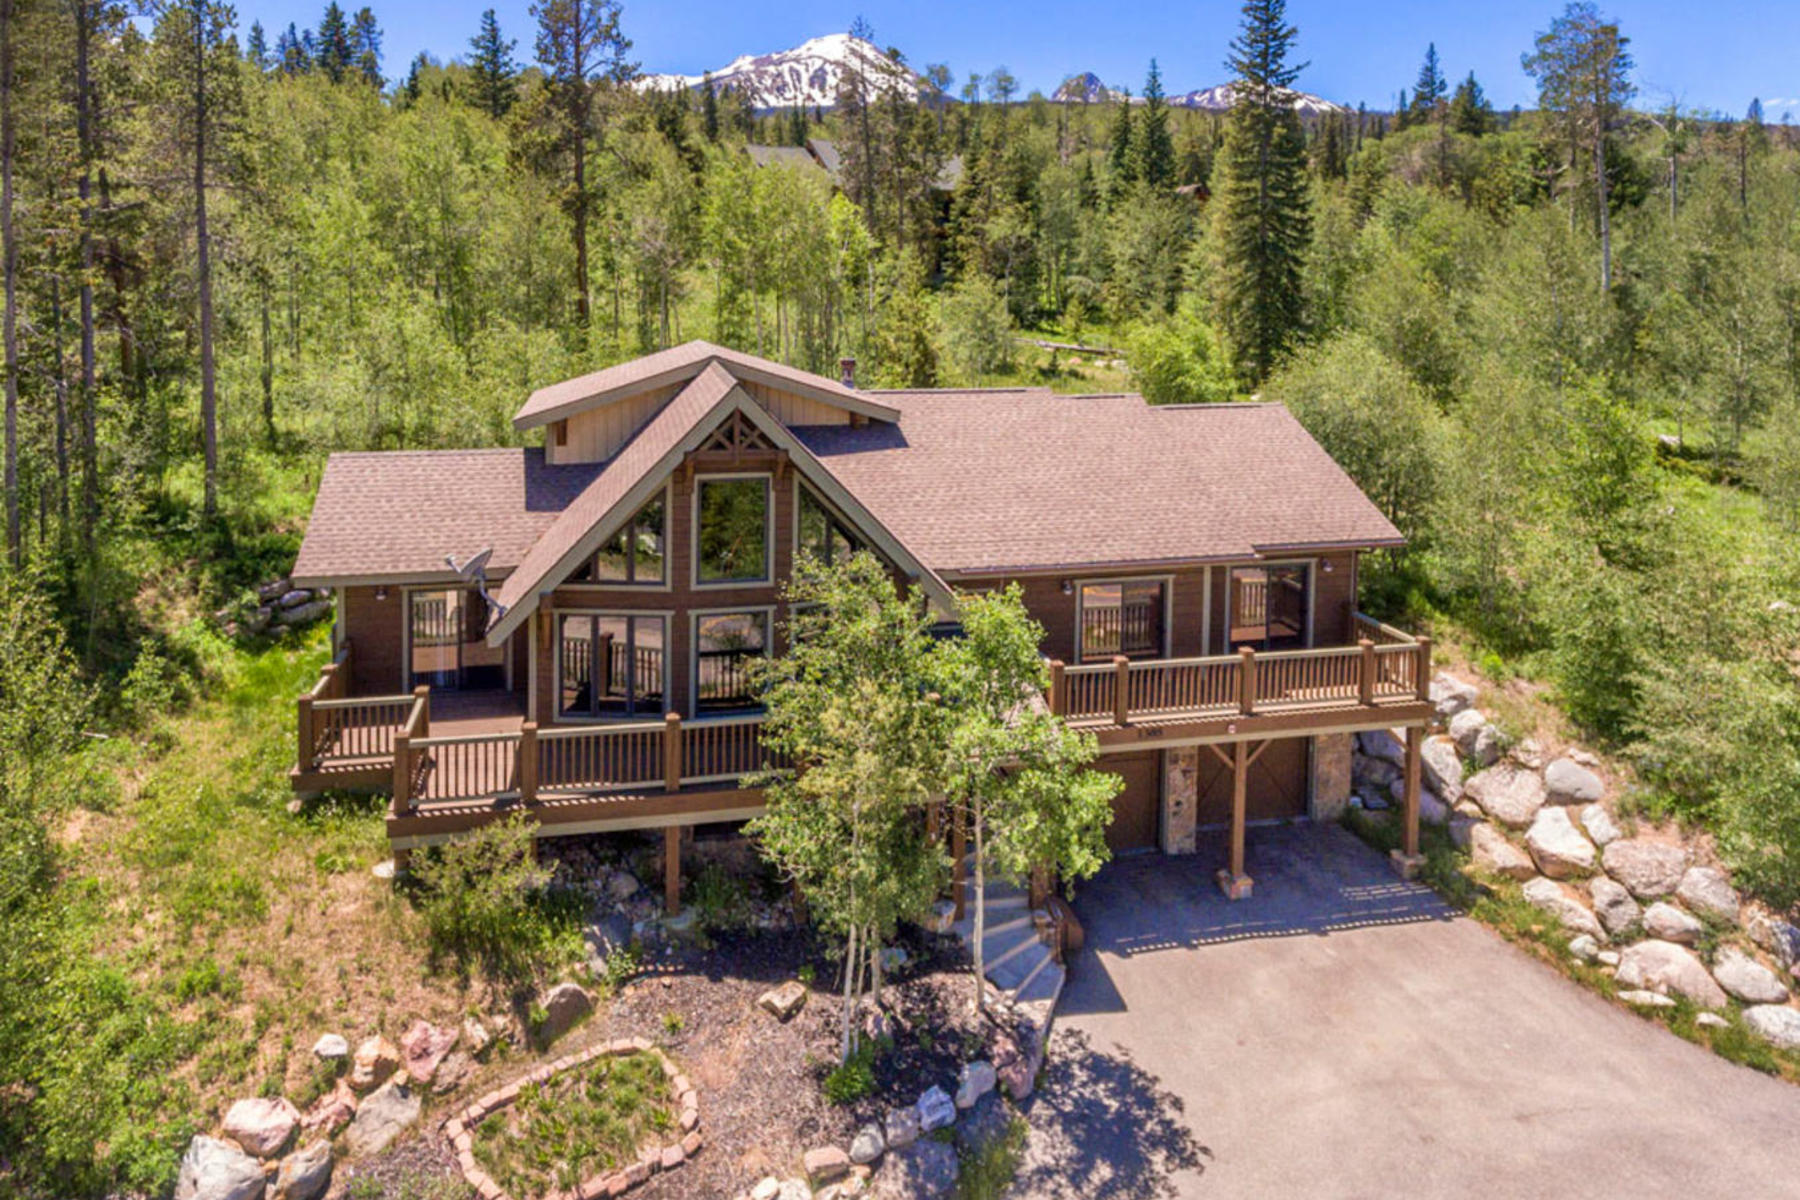 Single Family Homes for Sale at Stunning Home in Three Peaks 1385 Golden Eagle Road Silverthorne, Colorado 80498 United States